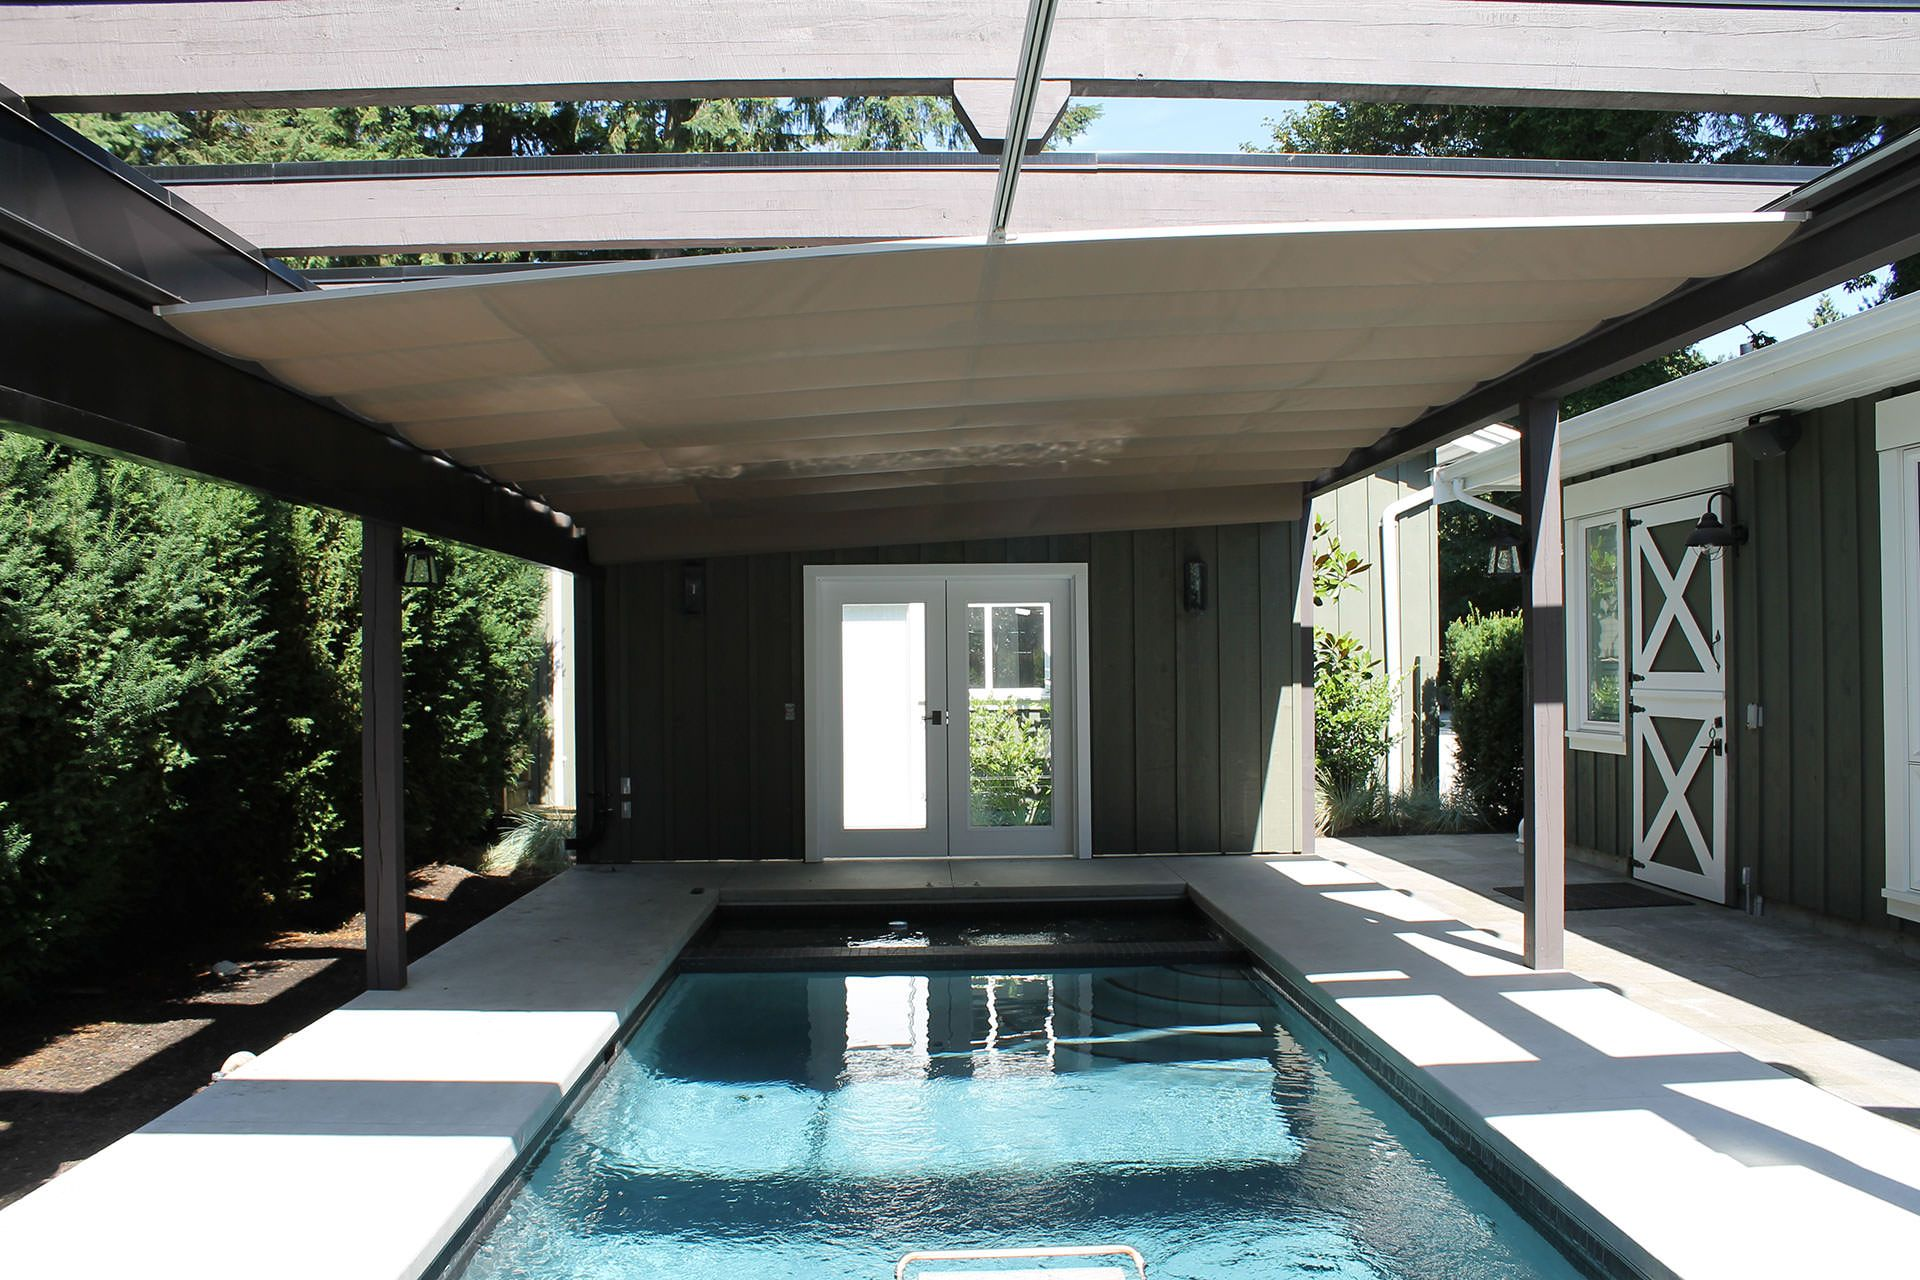 shadefx gives a new meaning to retractable pool covers with this